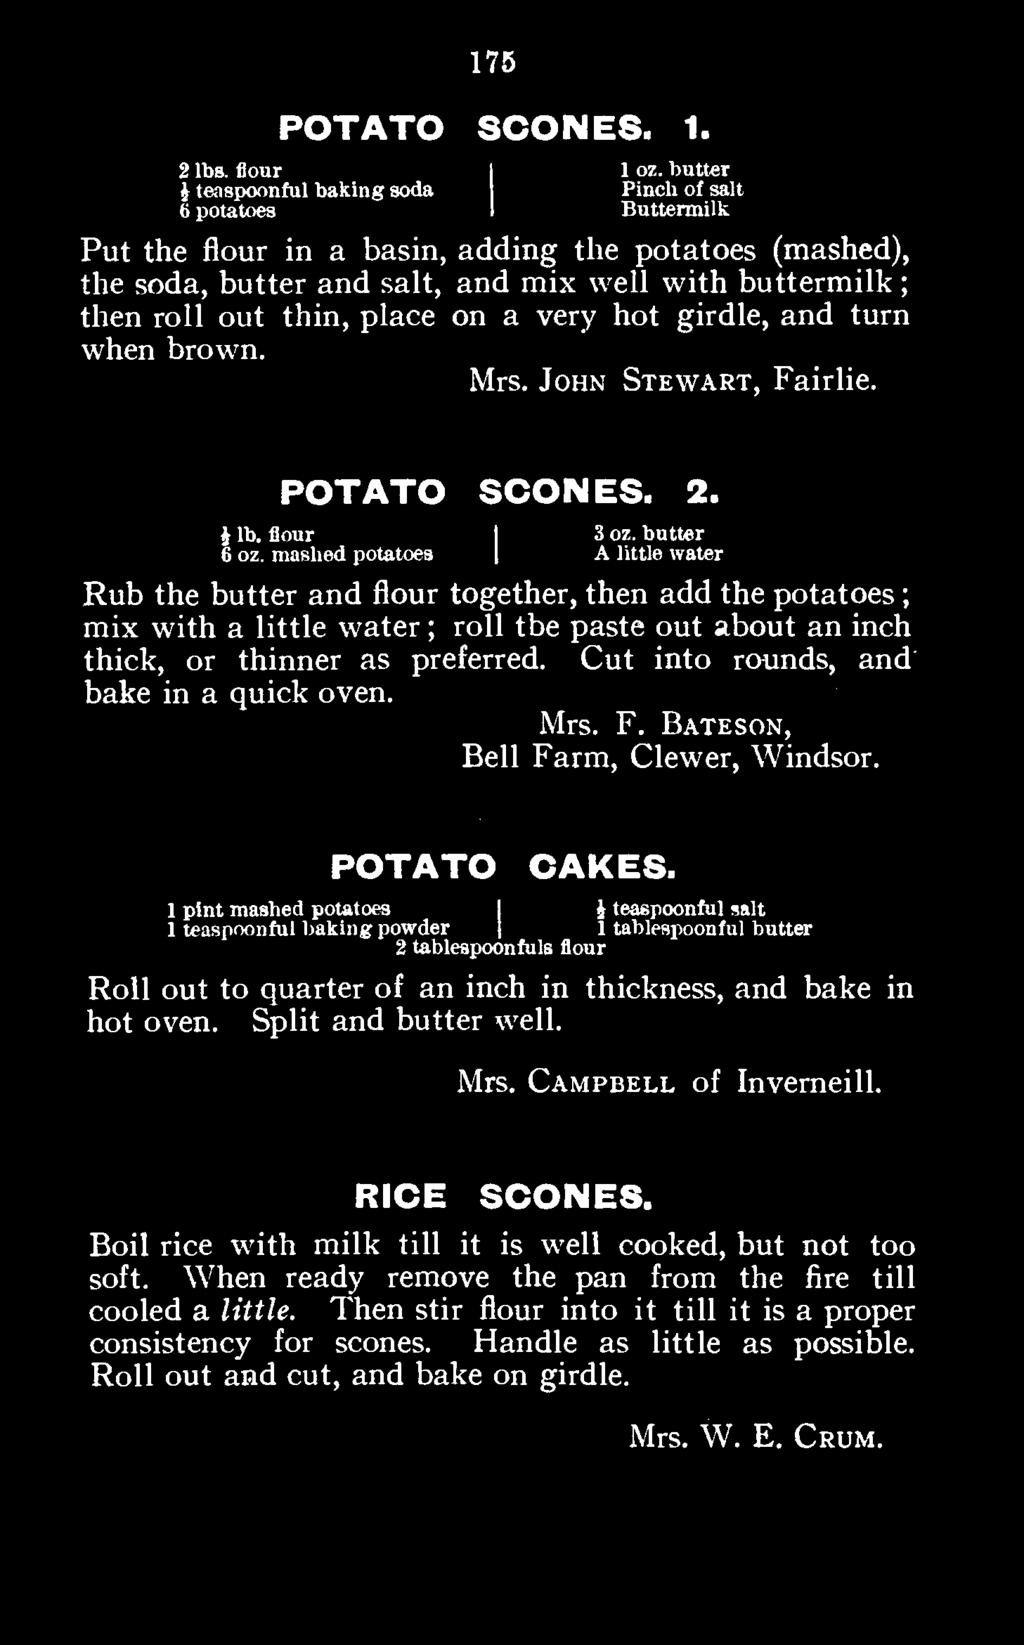 Cut into rounds, and bake in a quick oven. Mrs. F. Bateson, Bell Farm, Clewer, Windsor. POTATO CAKES.